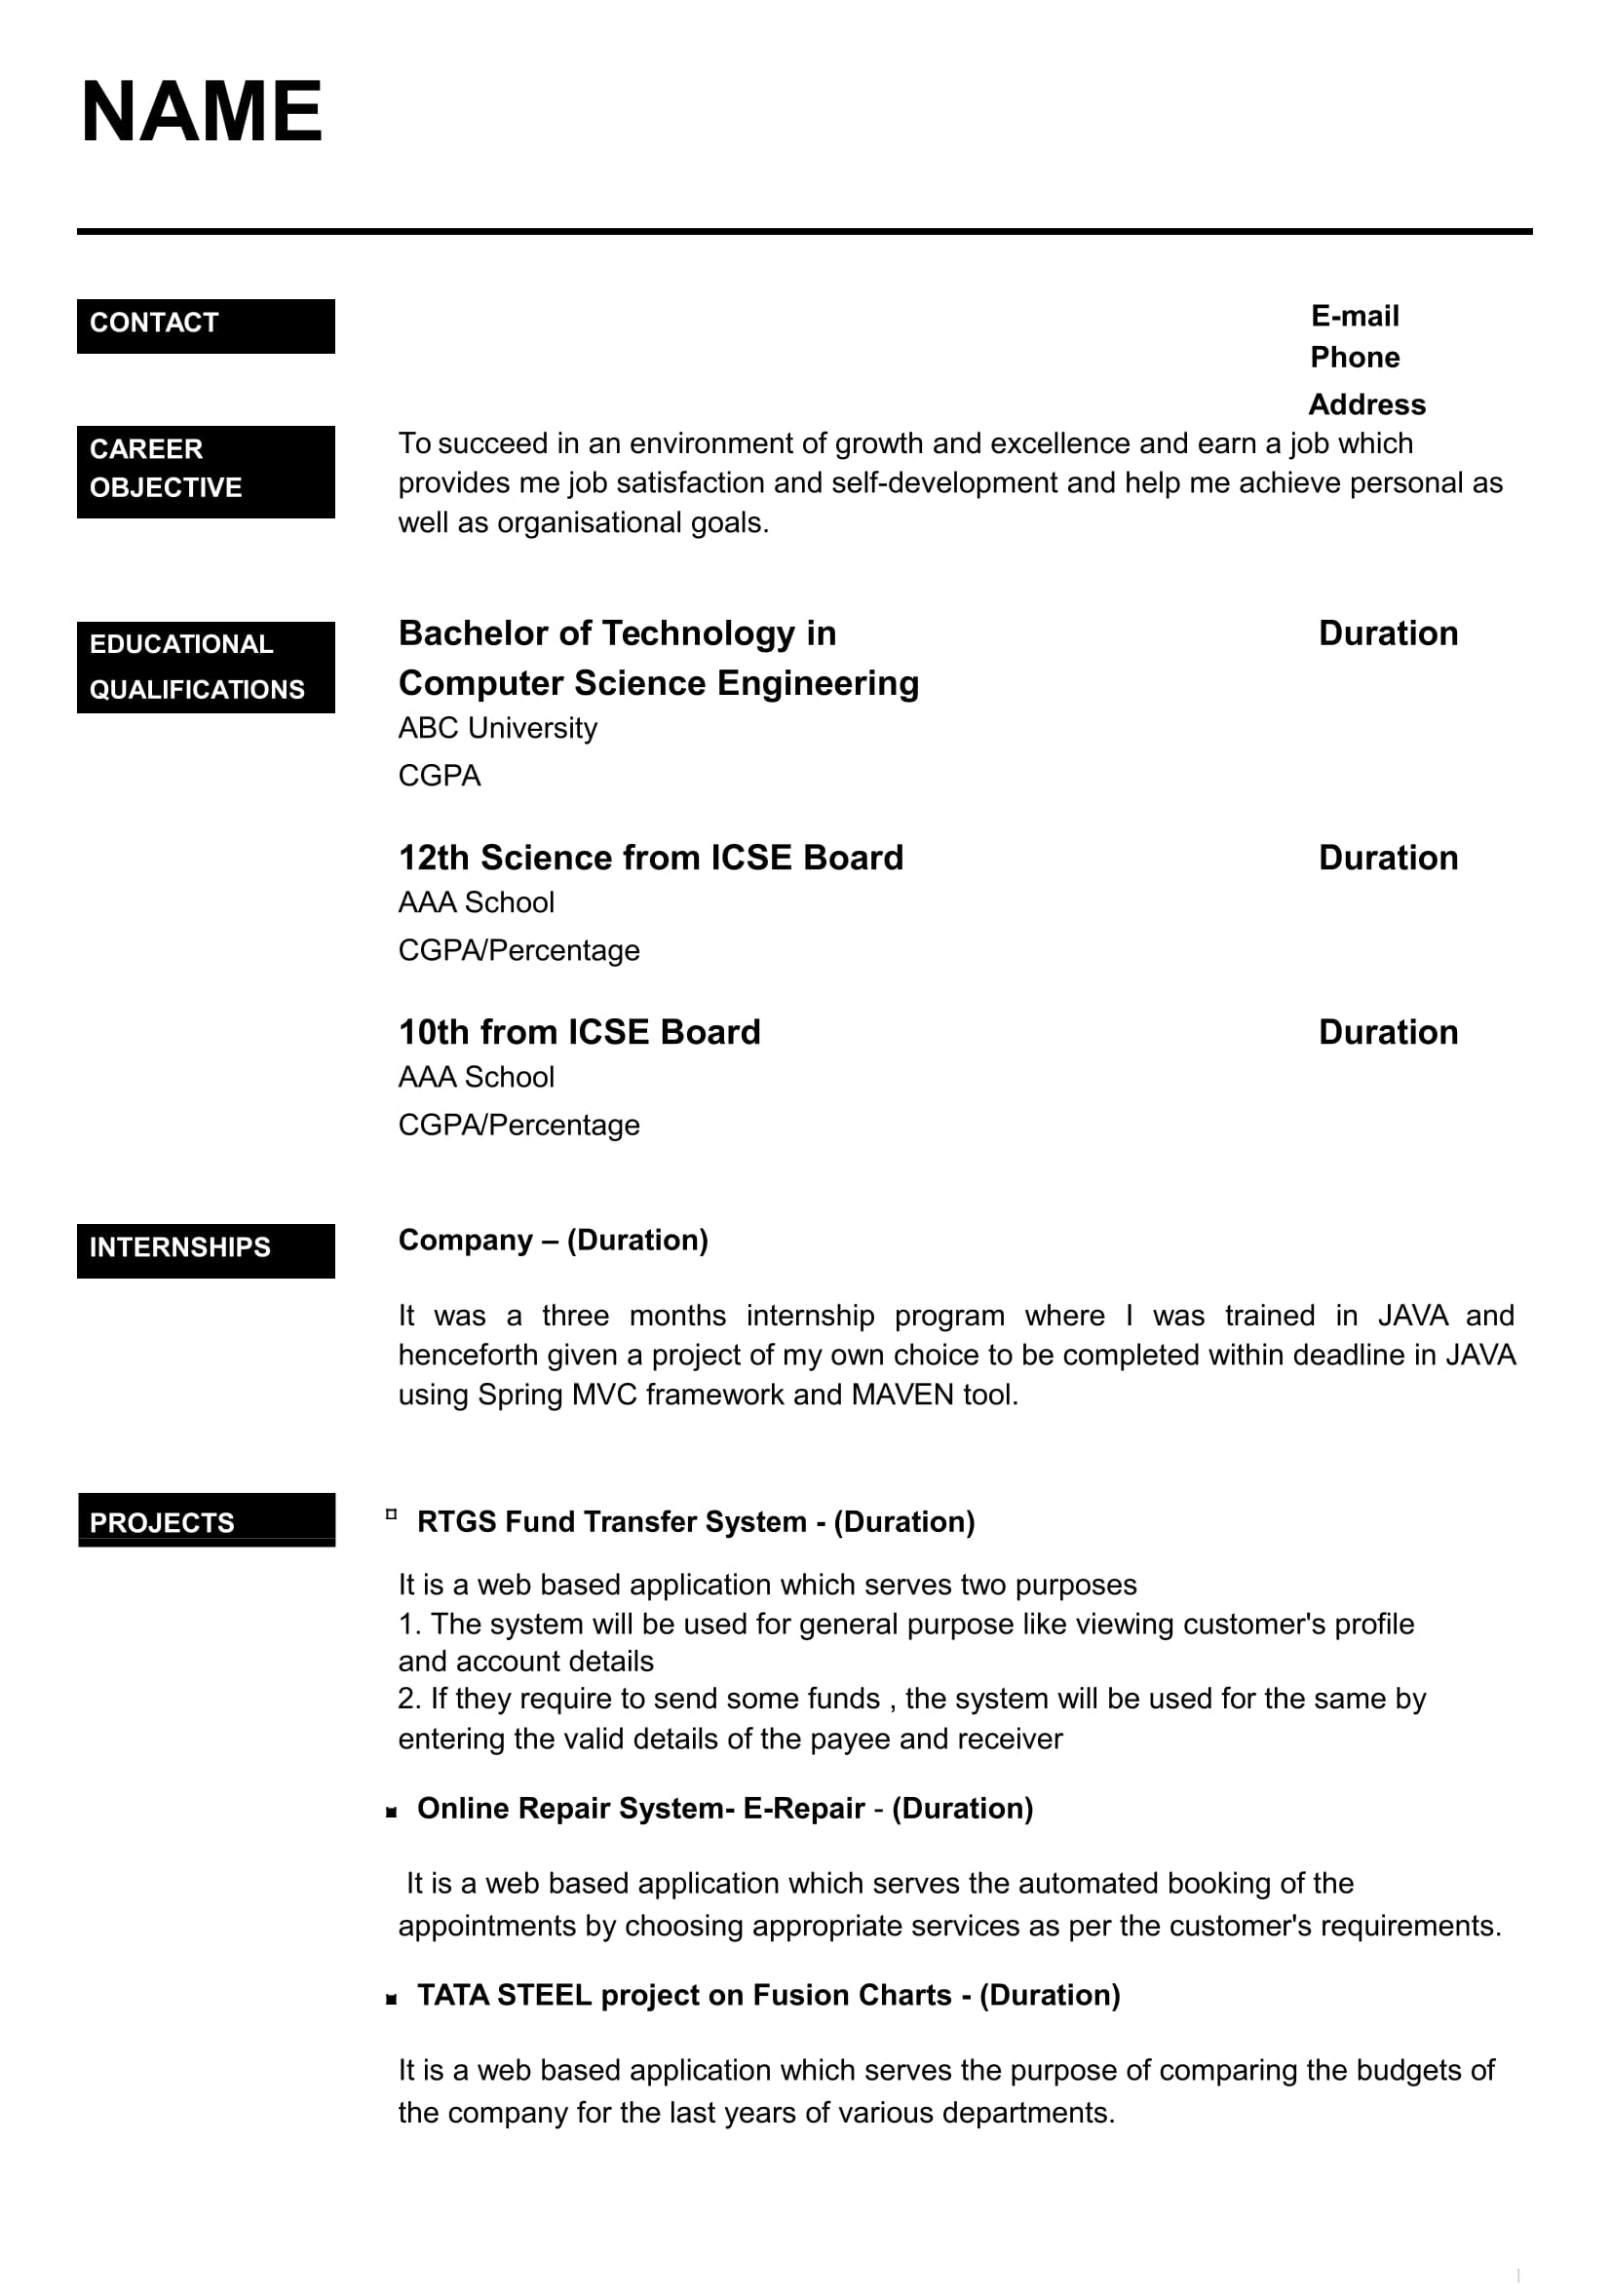 Resume Templates For Computer Science Engineer Freshers Download Free